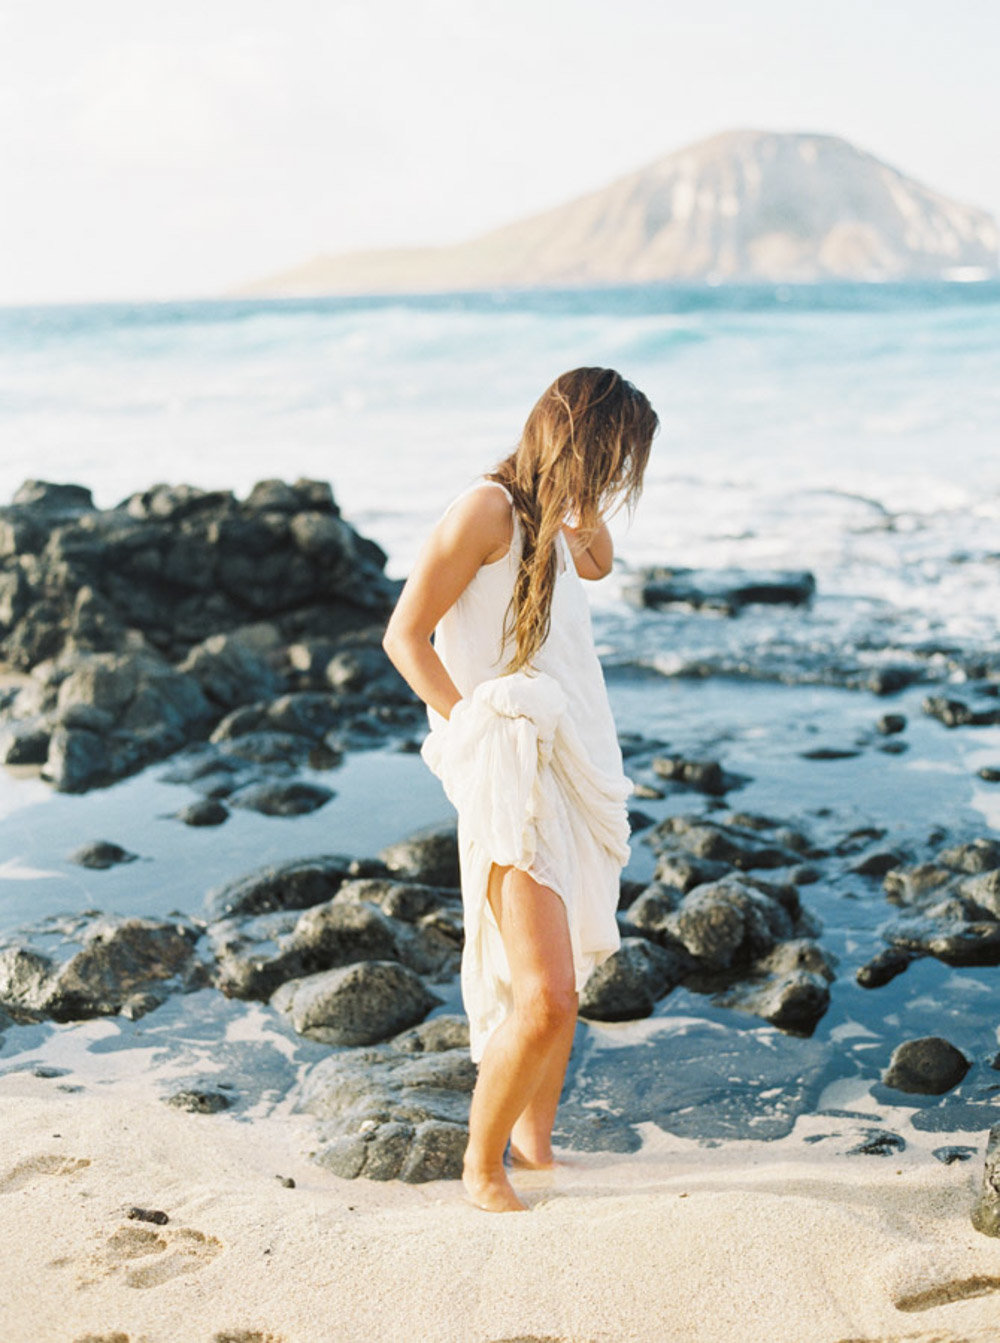 Hawaii Destination Wedding Photographer Sheri McMahon - Hawaii Beach Elopement-00032